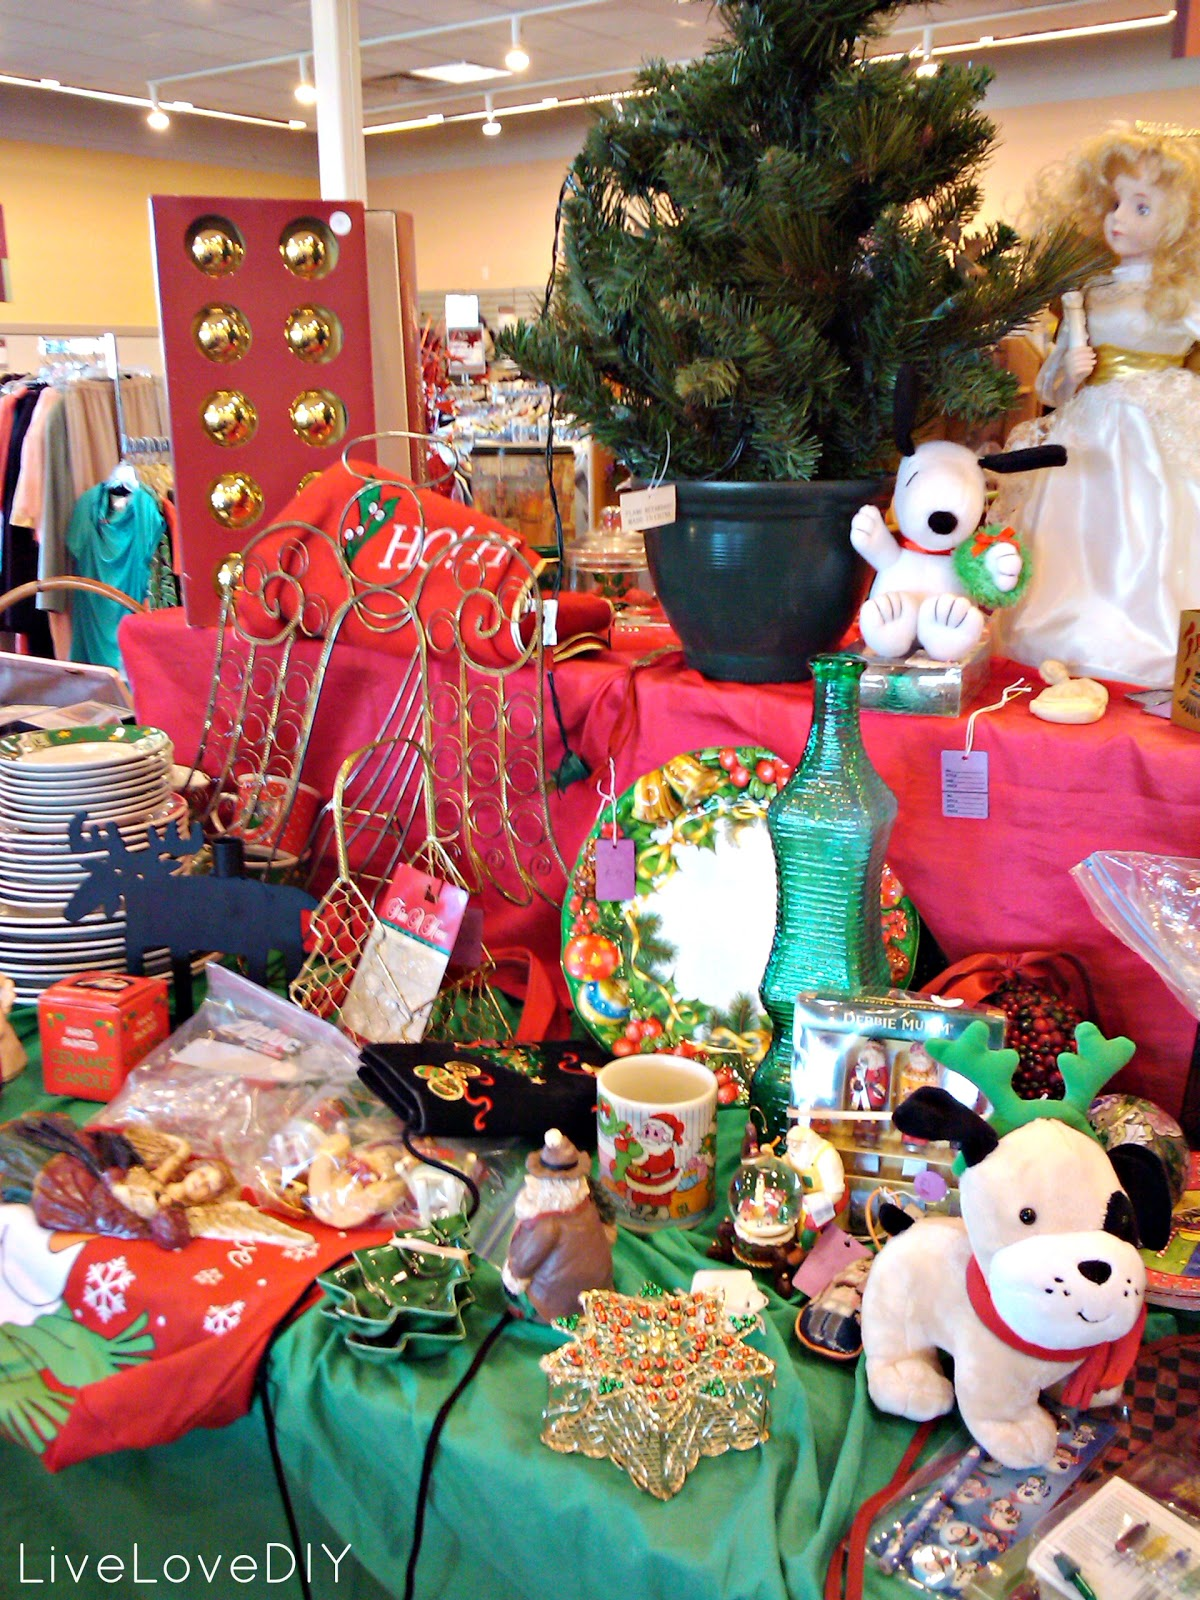 livelovediy how to shop at a thrift store for christmas decor - 99 Cent Store Christmas Decorations